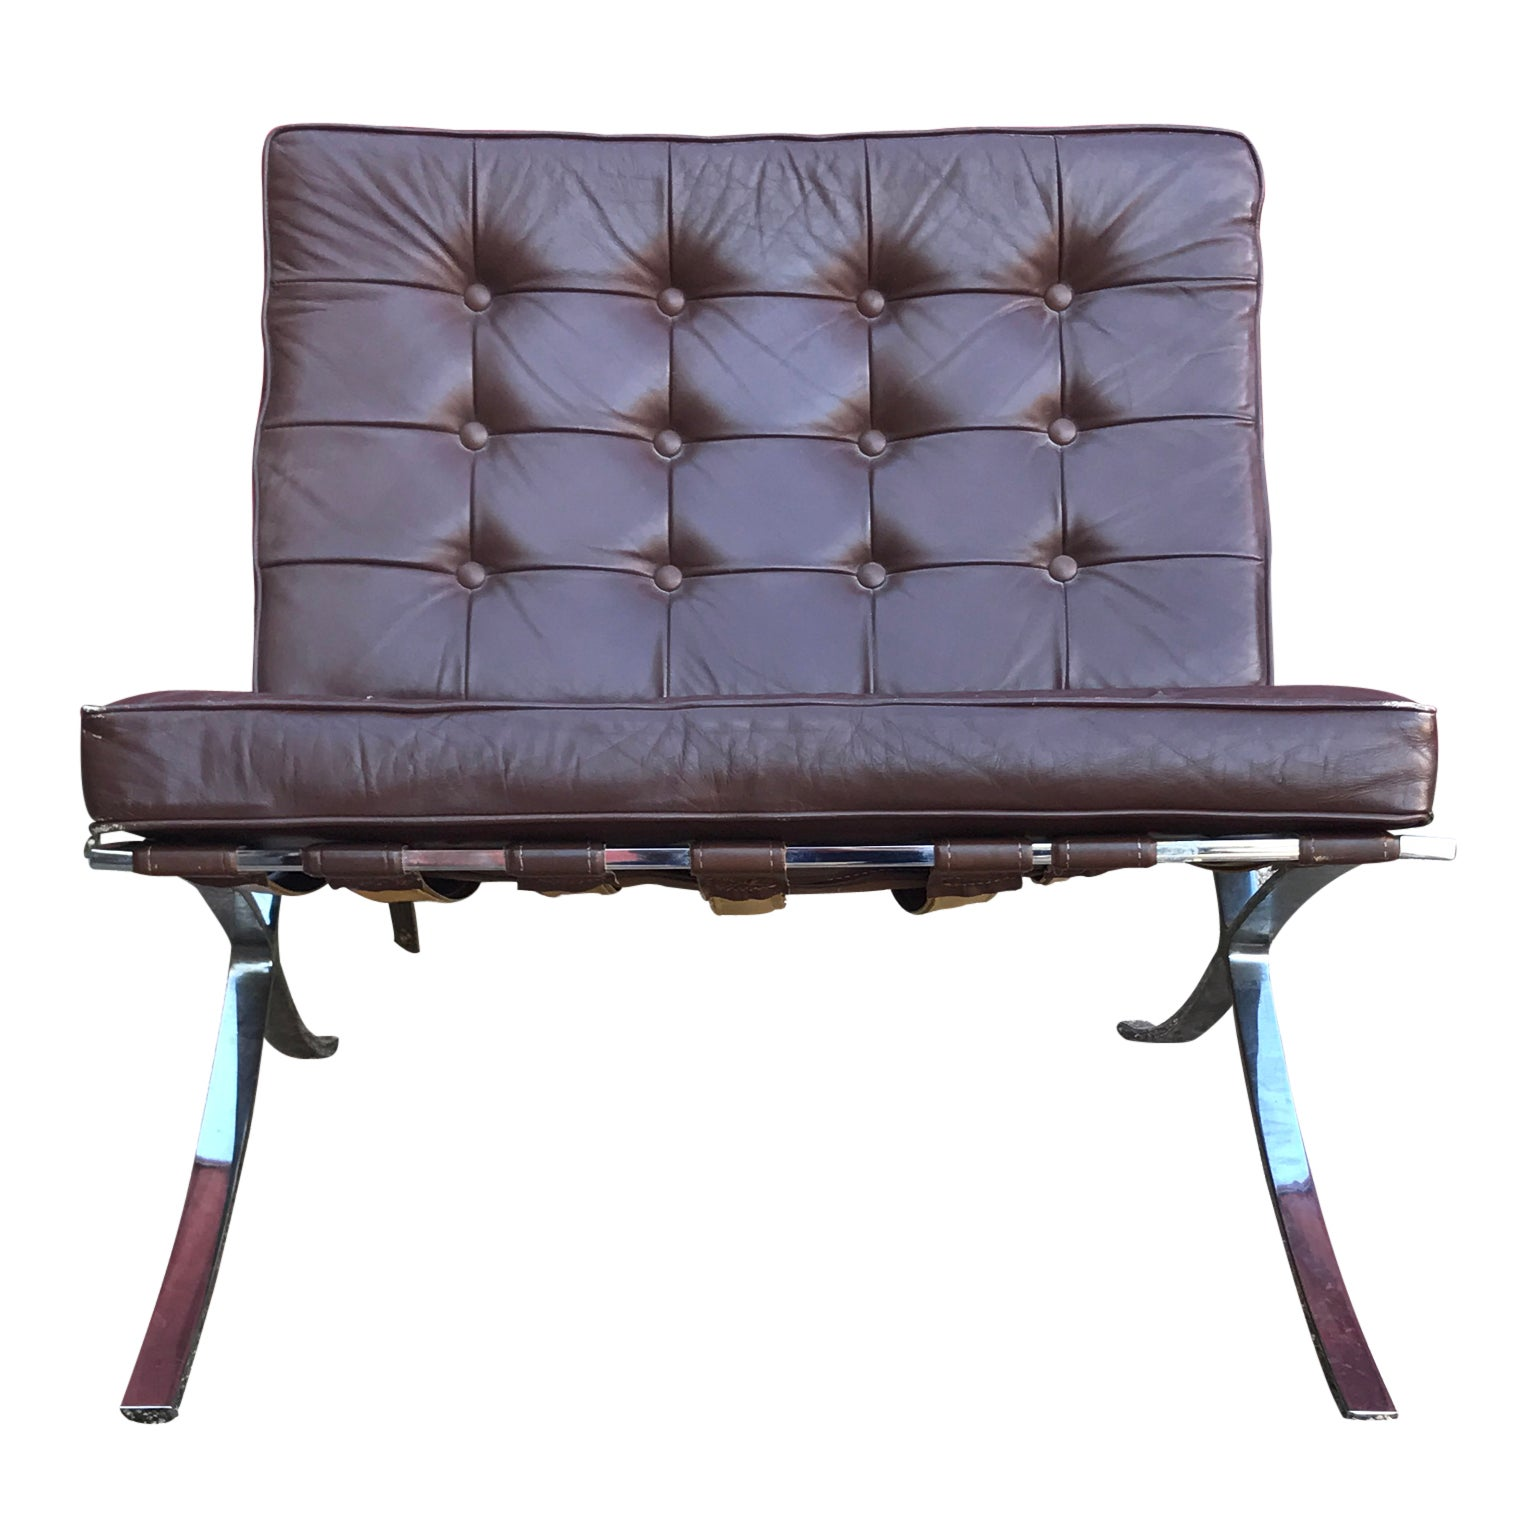 Modern Brown Leather Barcelona Style Lounge Chair With Chrome Base